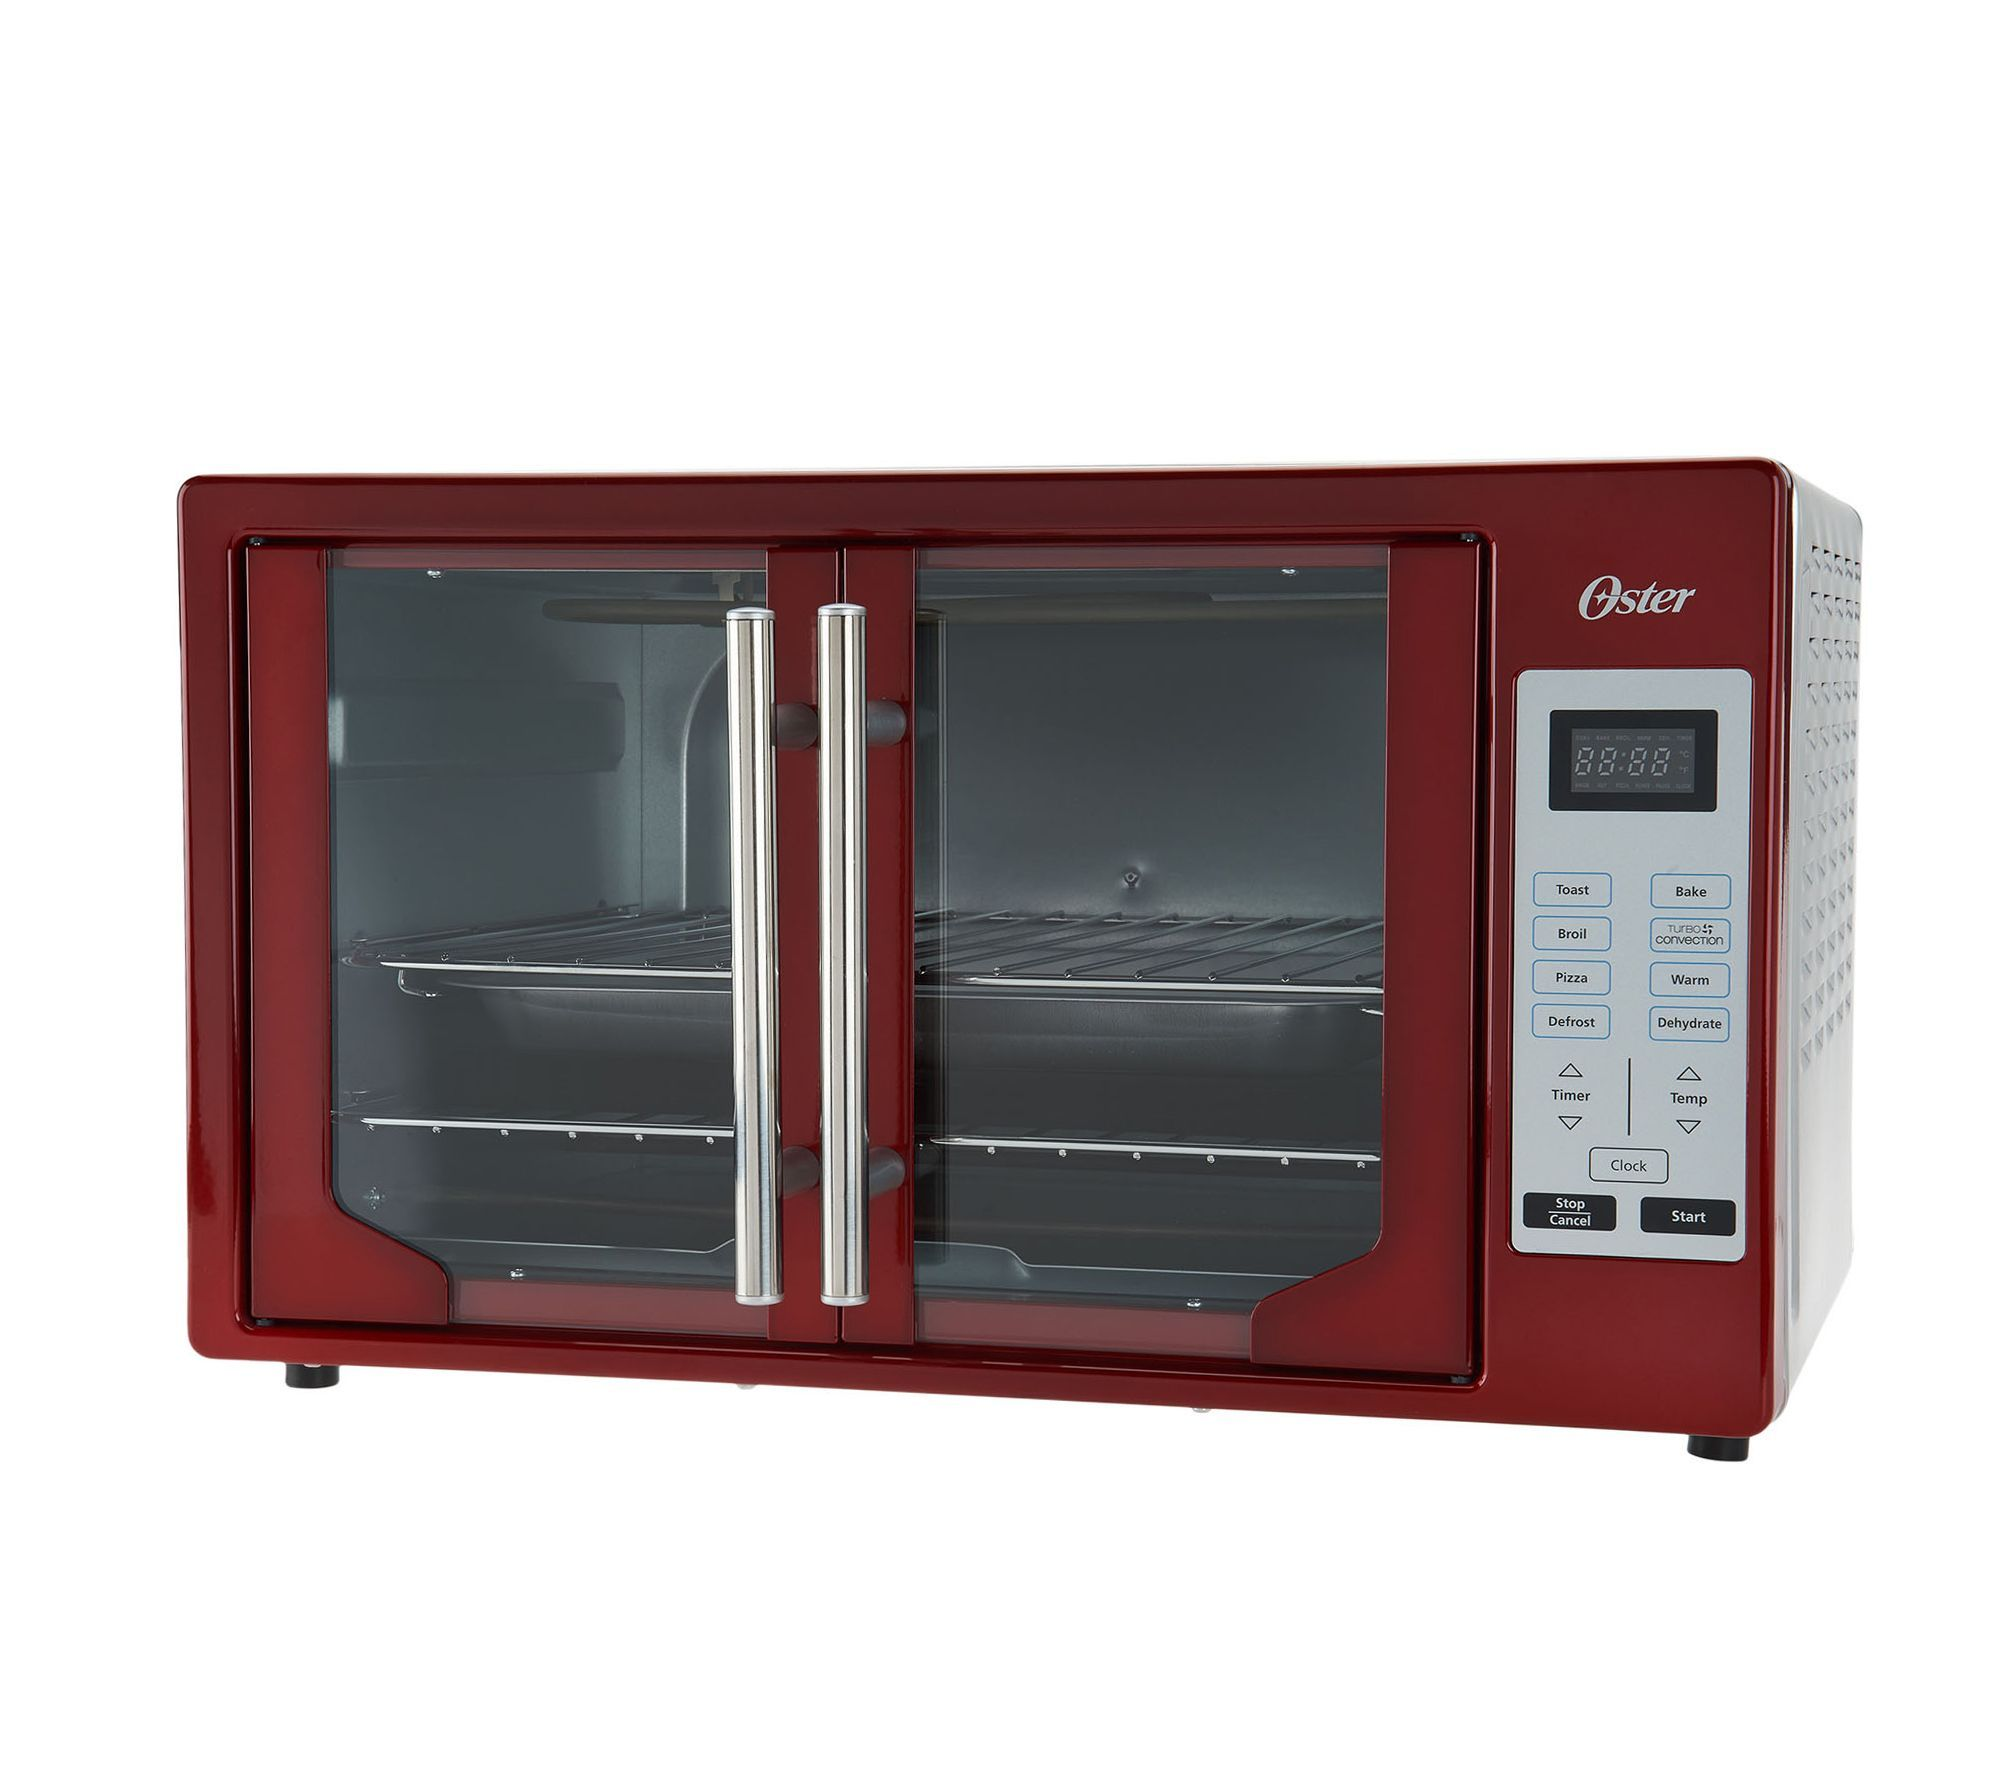 Enjoy Quick Meals Galore With The Help Of The Oster Xl Countertop Oven Page 1 Qvc Com Convection Oven Convection